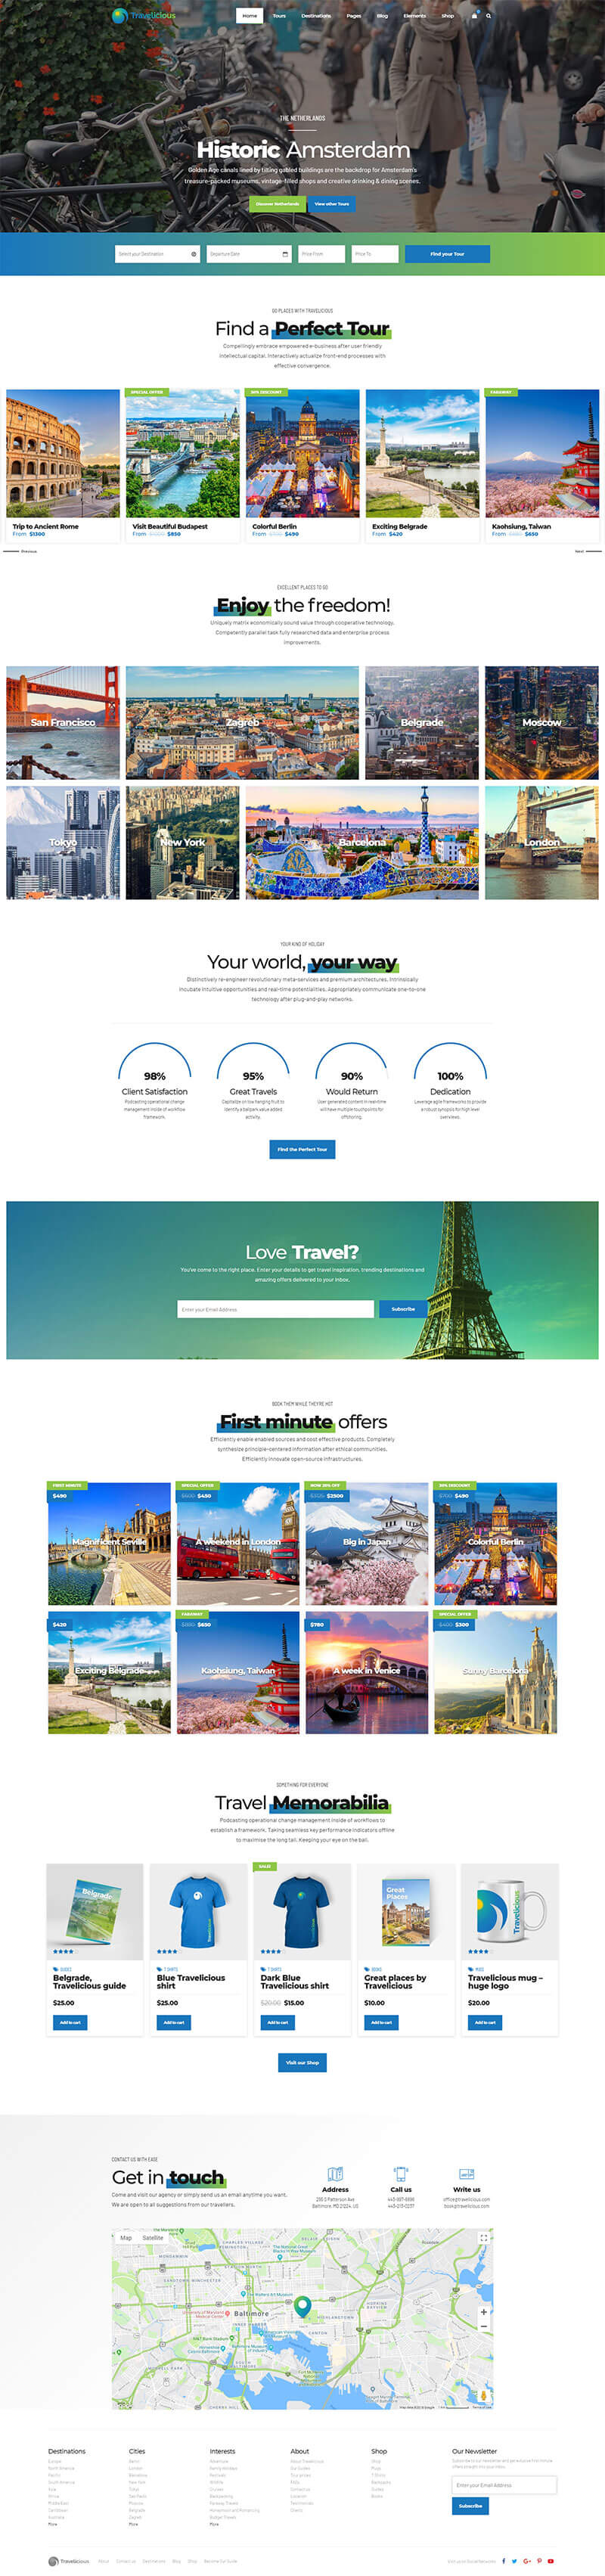 https://travelicious.bold-themes.com/wp-content/uploads/2018/10/demo-introductory-video.jpg